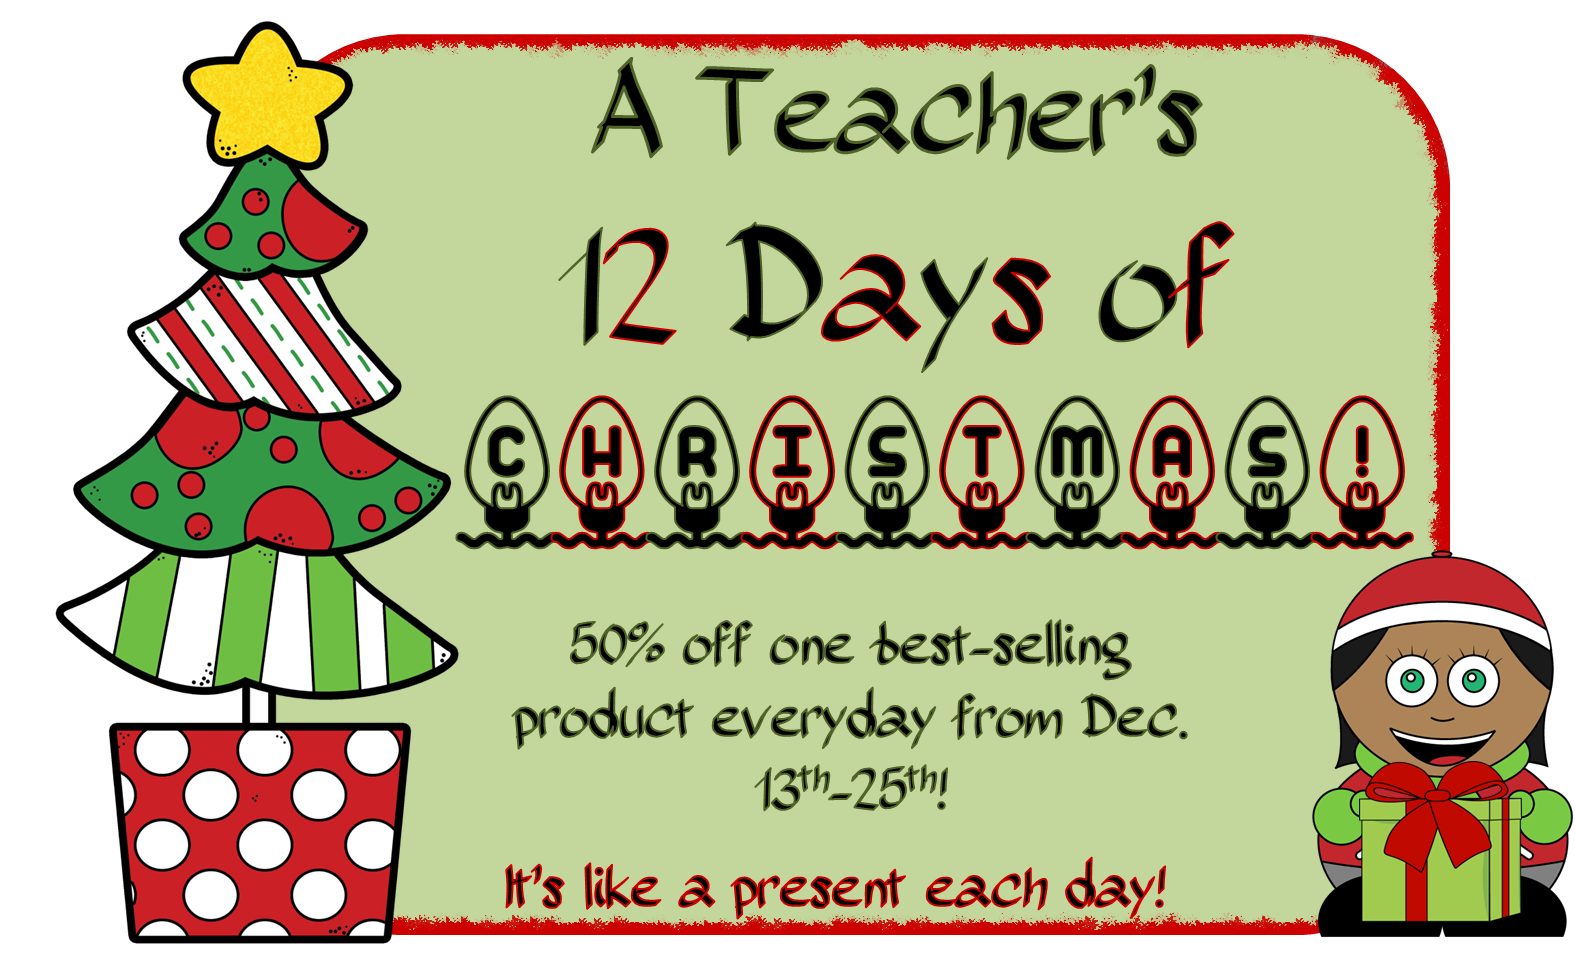 hi everyone welcome back to the 12 days of christmas where you can grab one of my best selling products for 50 off for one day only